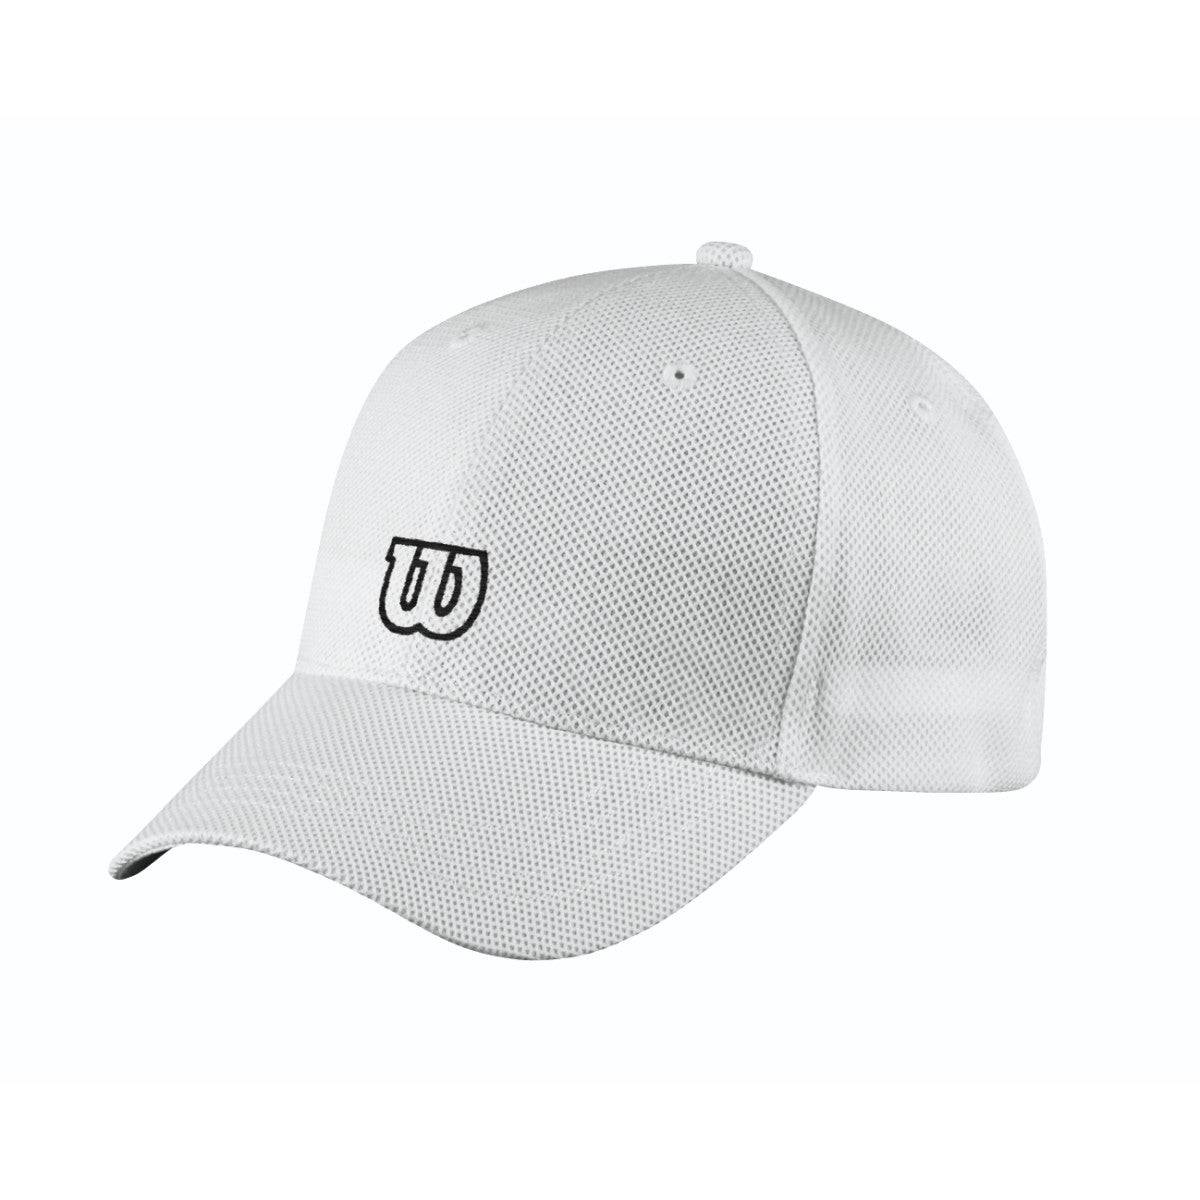 Wilson Youth Tour W Cap in White - Size: One Size Fits Most  - Unisex - White - Size: One Size Fits Most